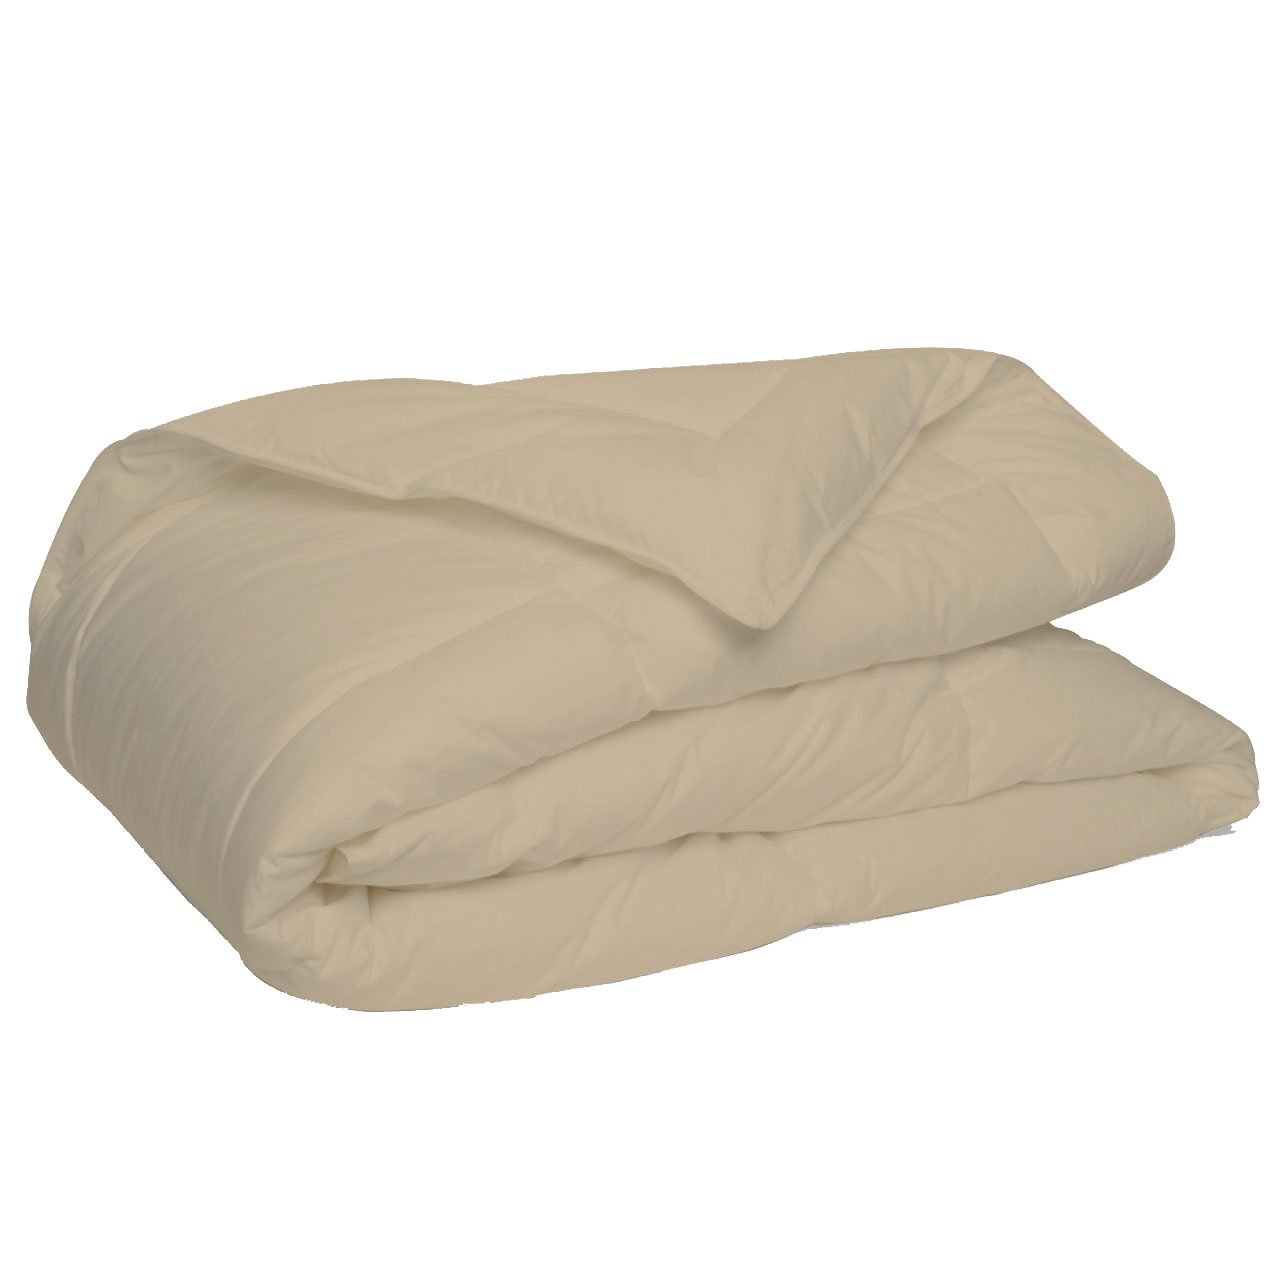 Elegant and Luxury Quality Comforter by New York Mercado 300 GSM All seasons Warm Fluffy Ultra-Soft and Smooth, Made of 100% Long staple Egyptian cotton Italian finish (Queen, Taupe)